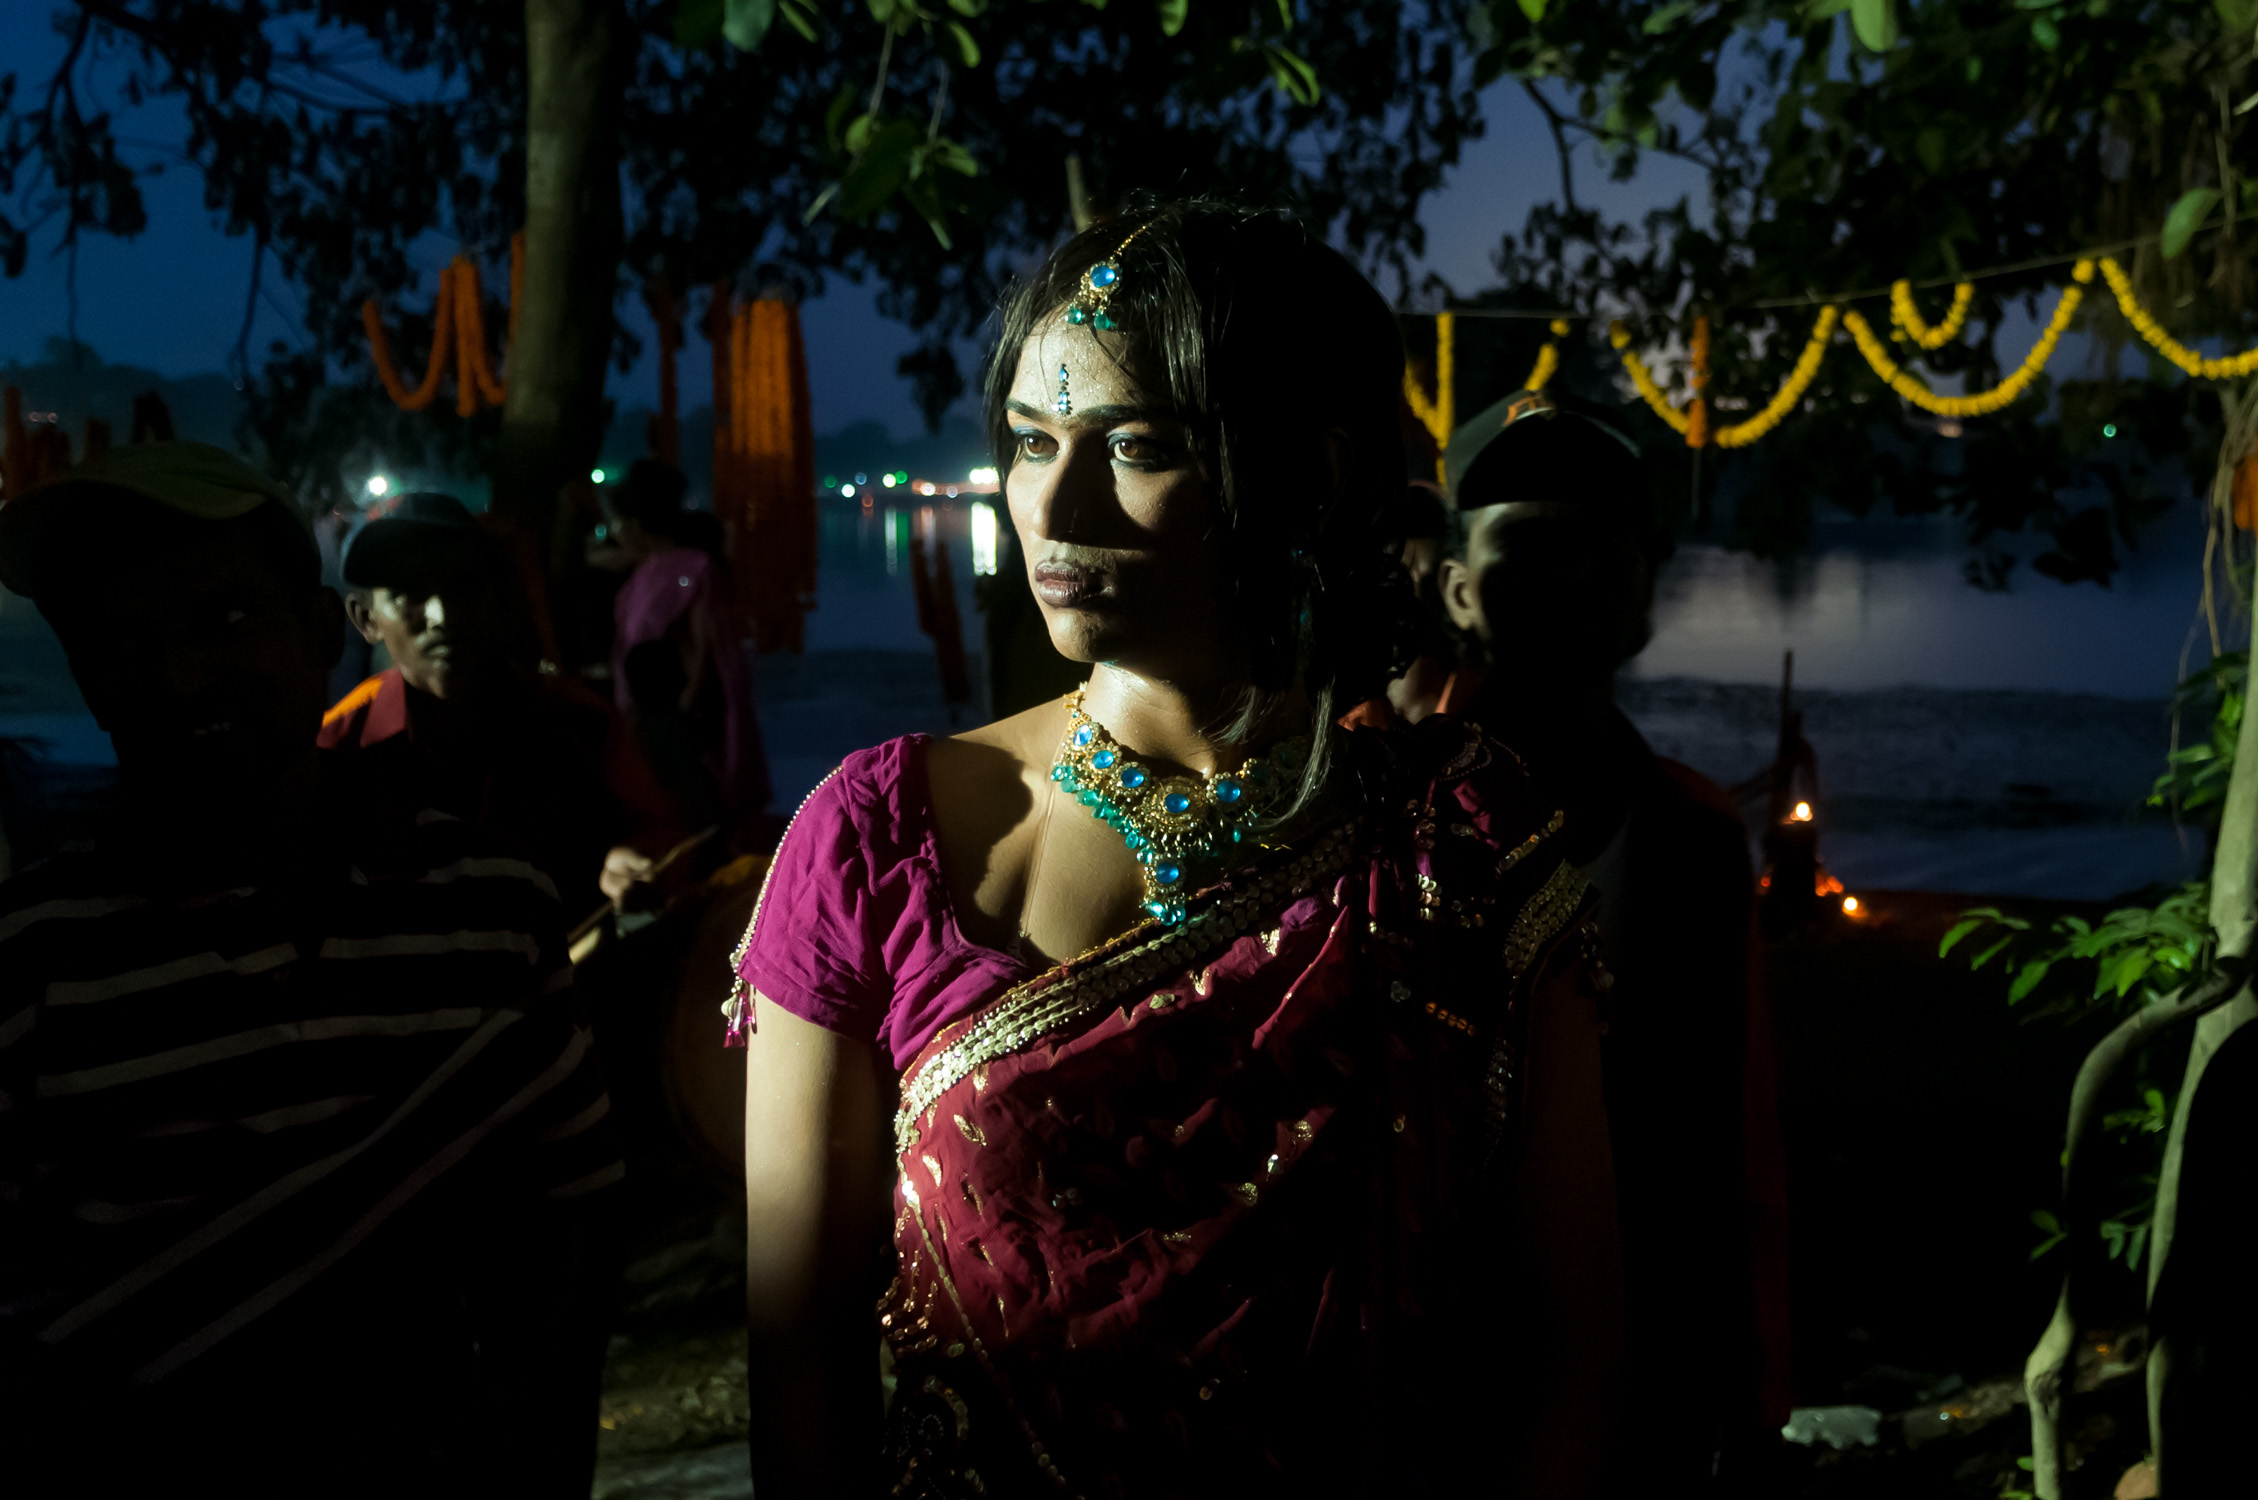 9_Chhandak Pradhan-reportage-Lipstick Men-transgender_dancer_India_Calcutta.jpg